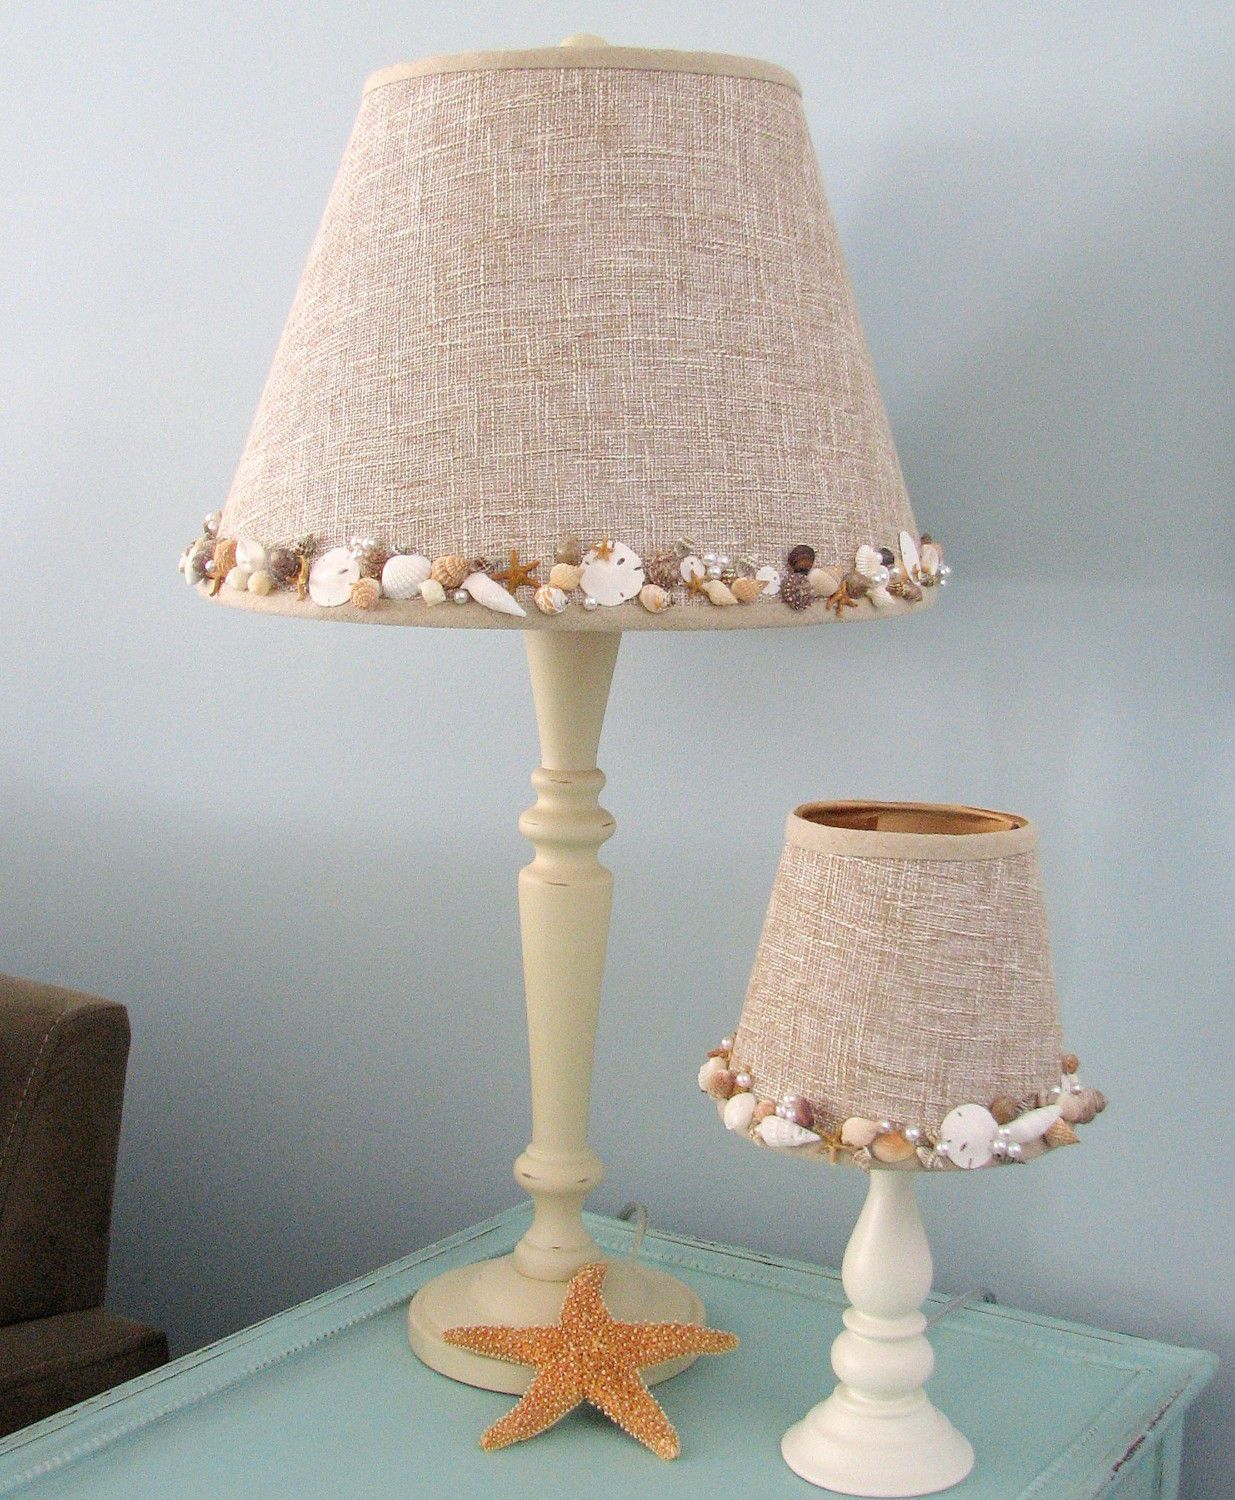 Pin By Krysten Bernetich On Wanted For My Home Seashells Lamp